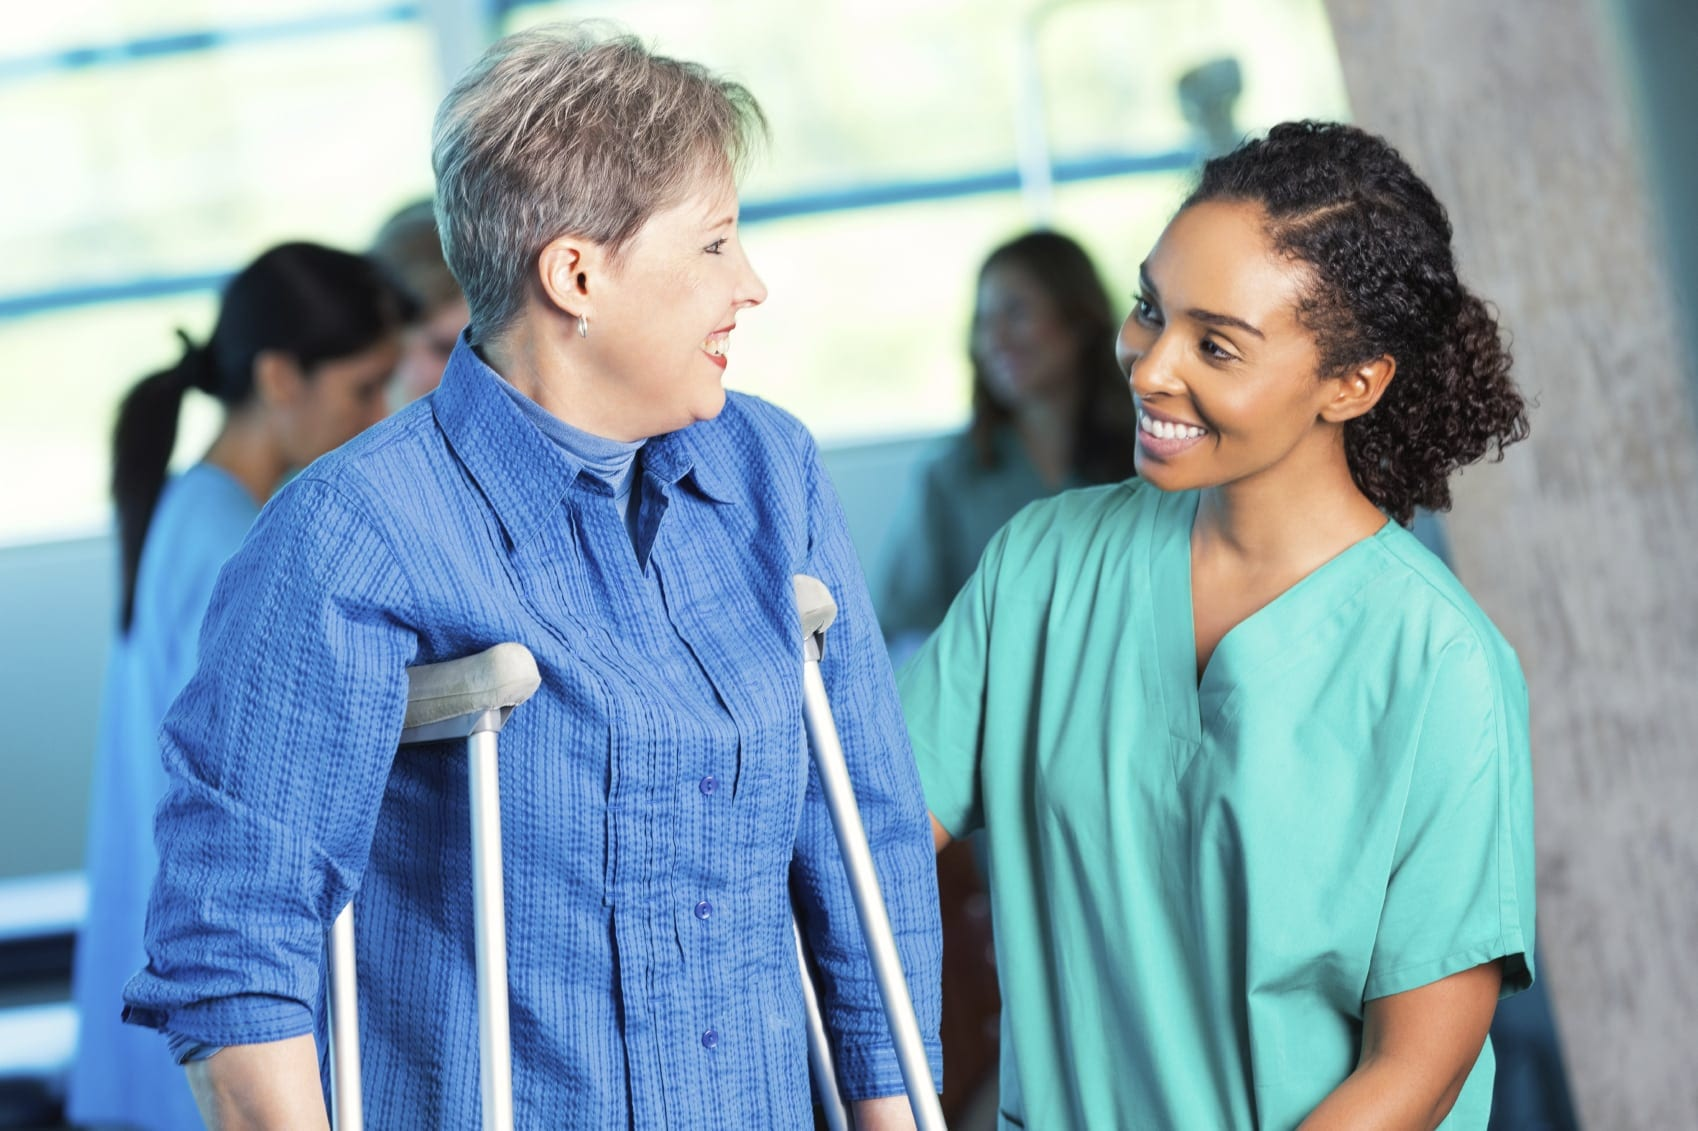 Young Nurse Helping Injured Woman On Crutches Stock Photo